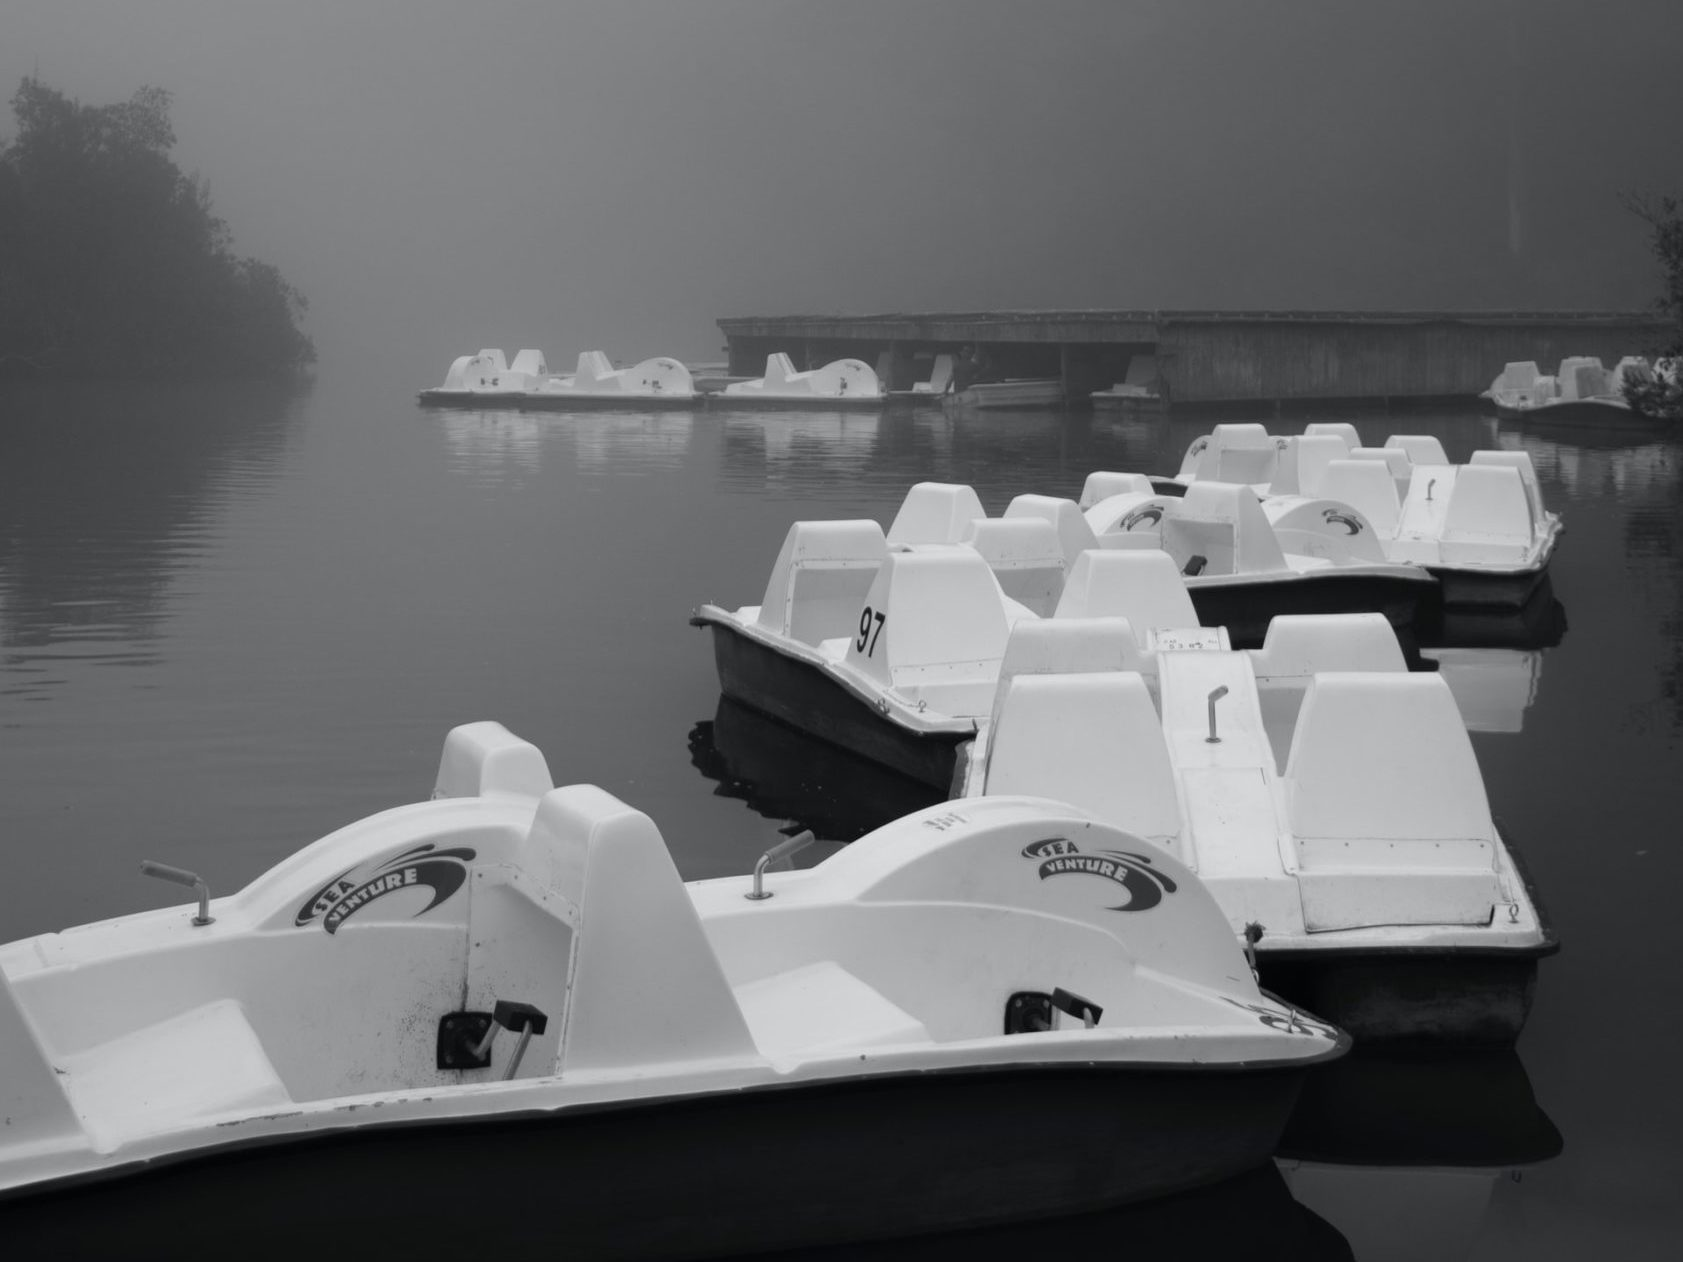 Paddle boats in the fog on Stow Lake inside Golden Gate Park